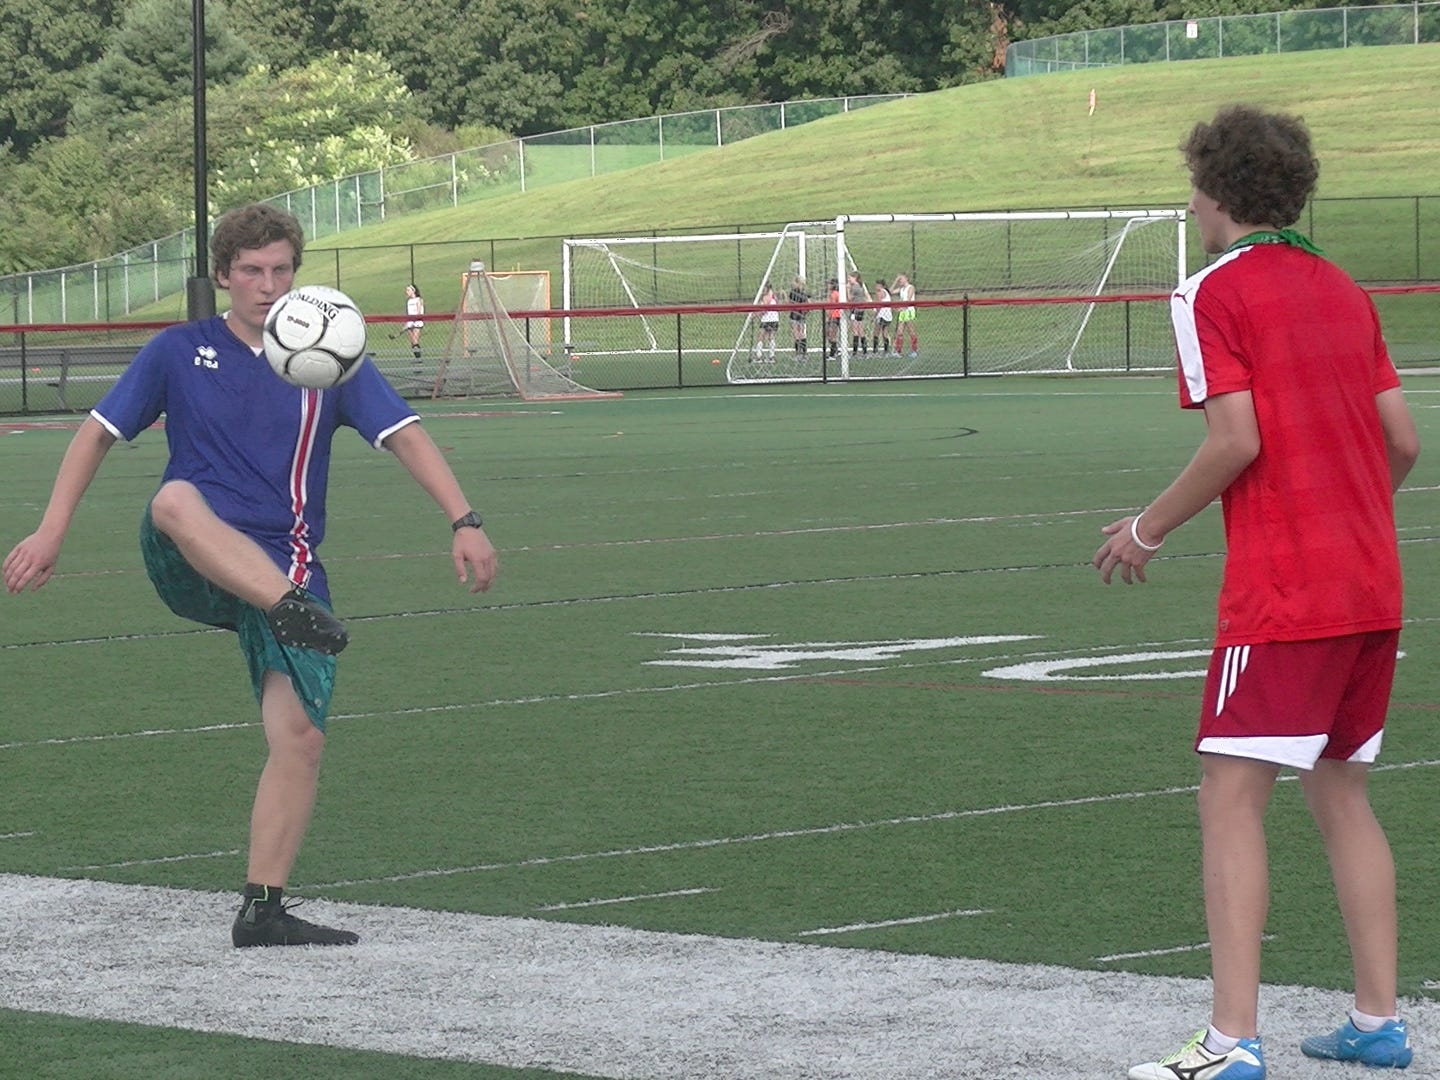 A Susquehannock boys' soccer player juggles the ball during the first day of fall practice on Monday.